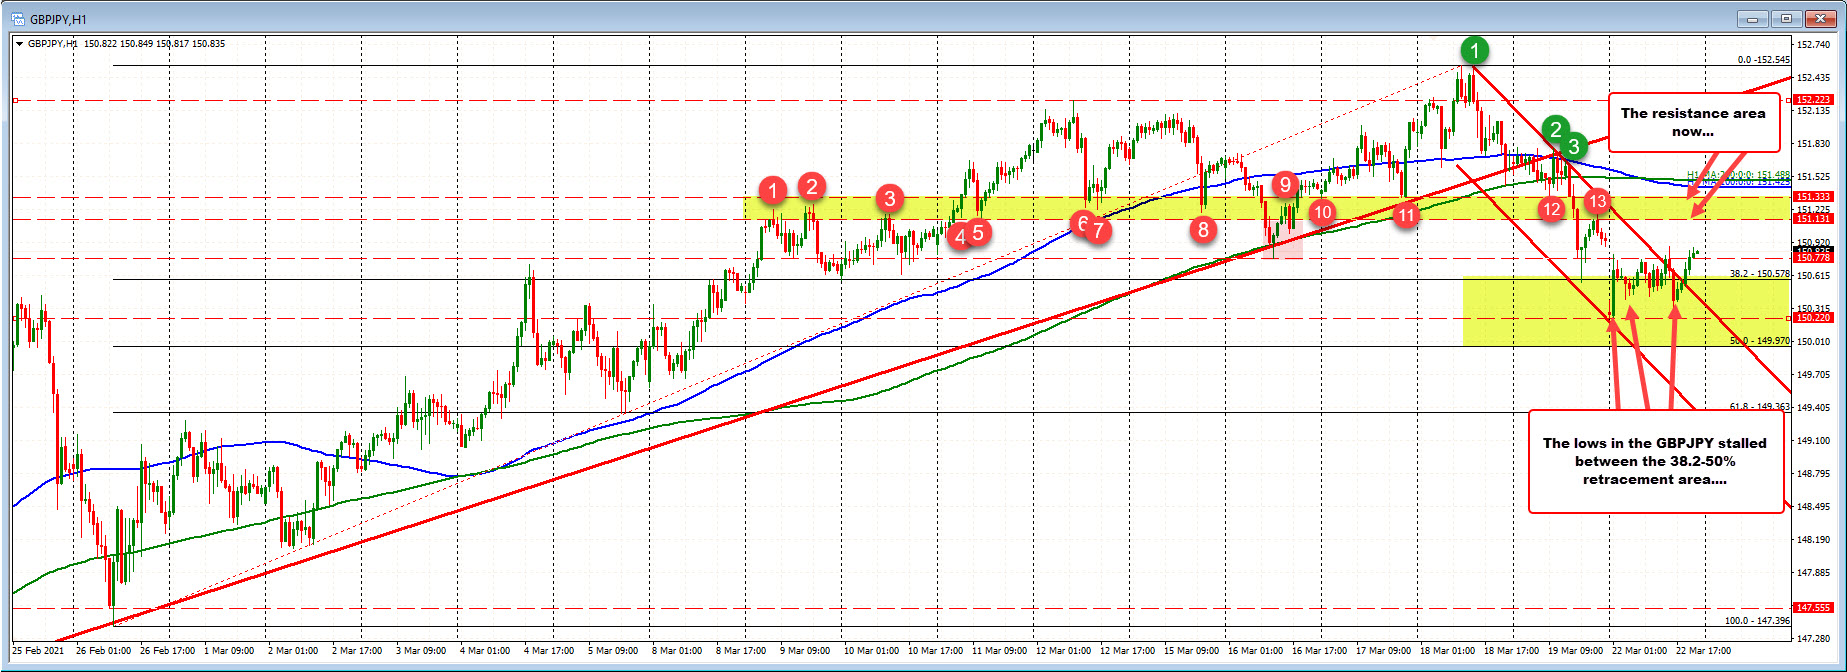 GBPJPY chops toward day high. Still down for the 3rd day